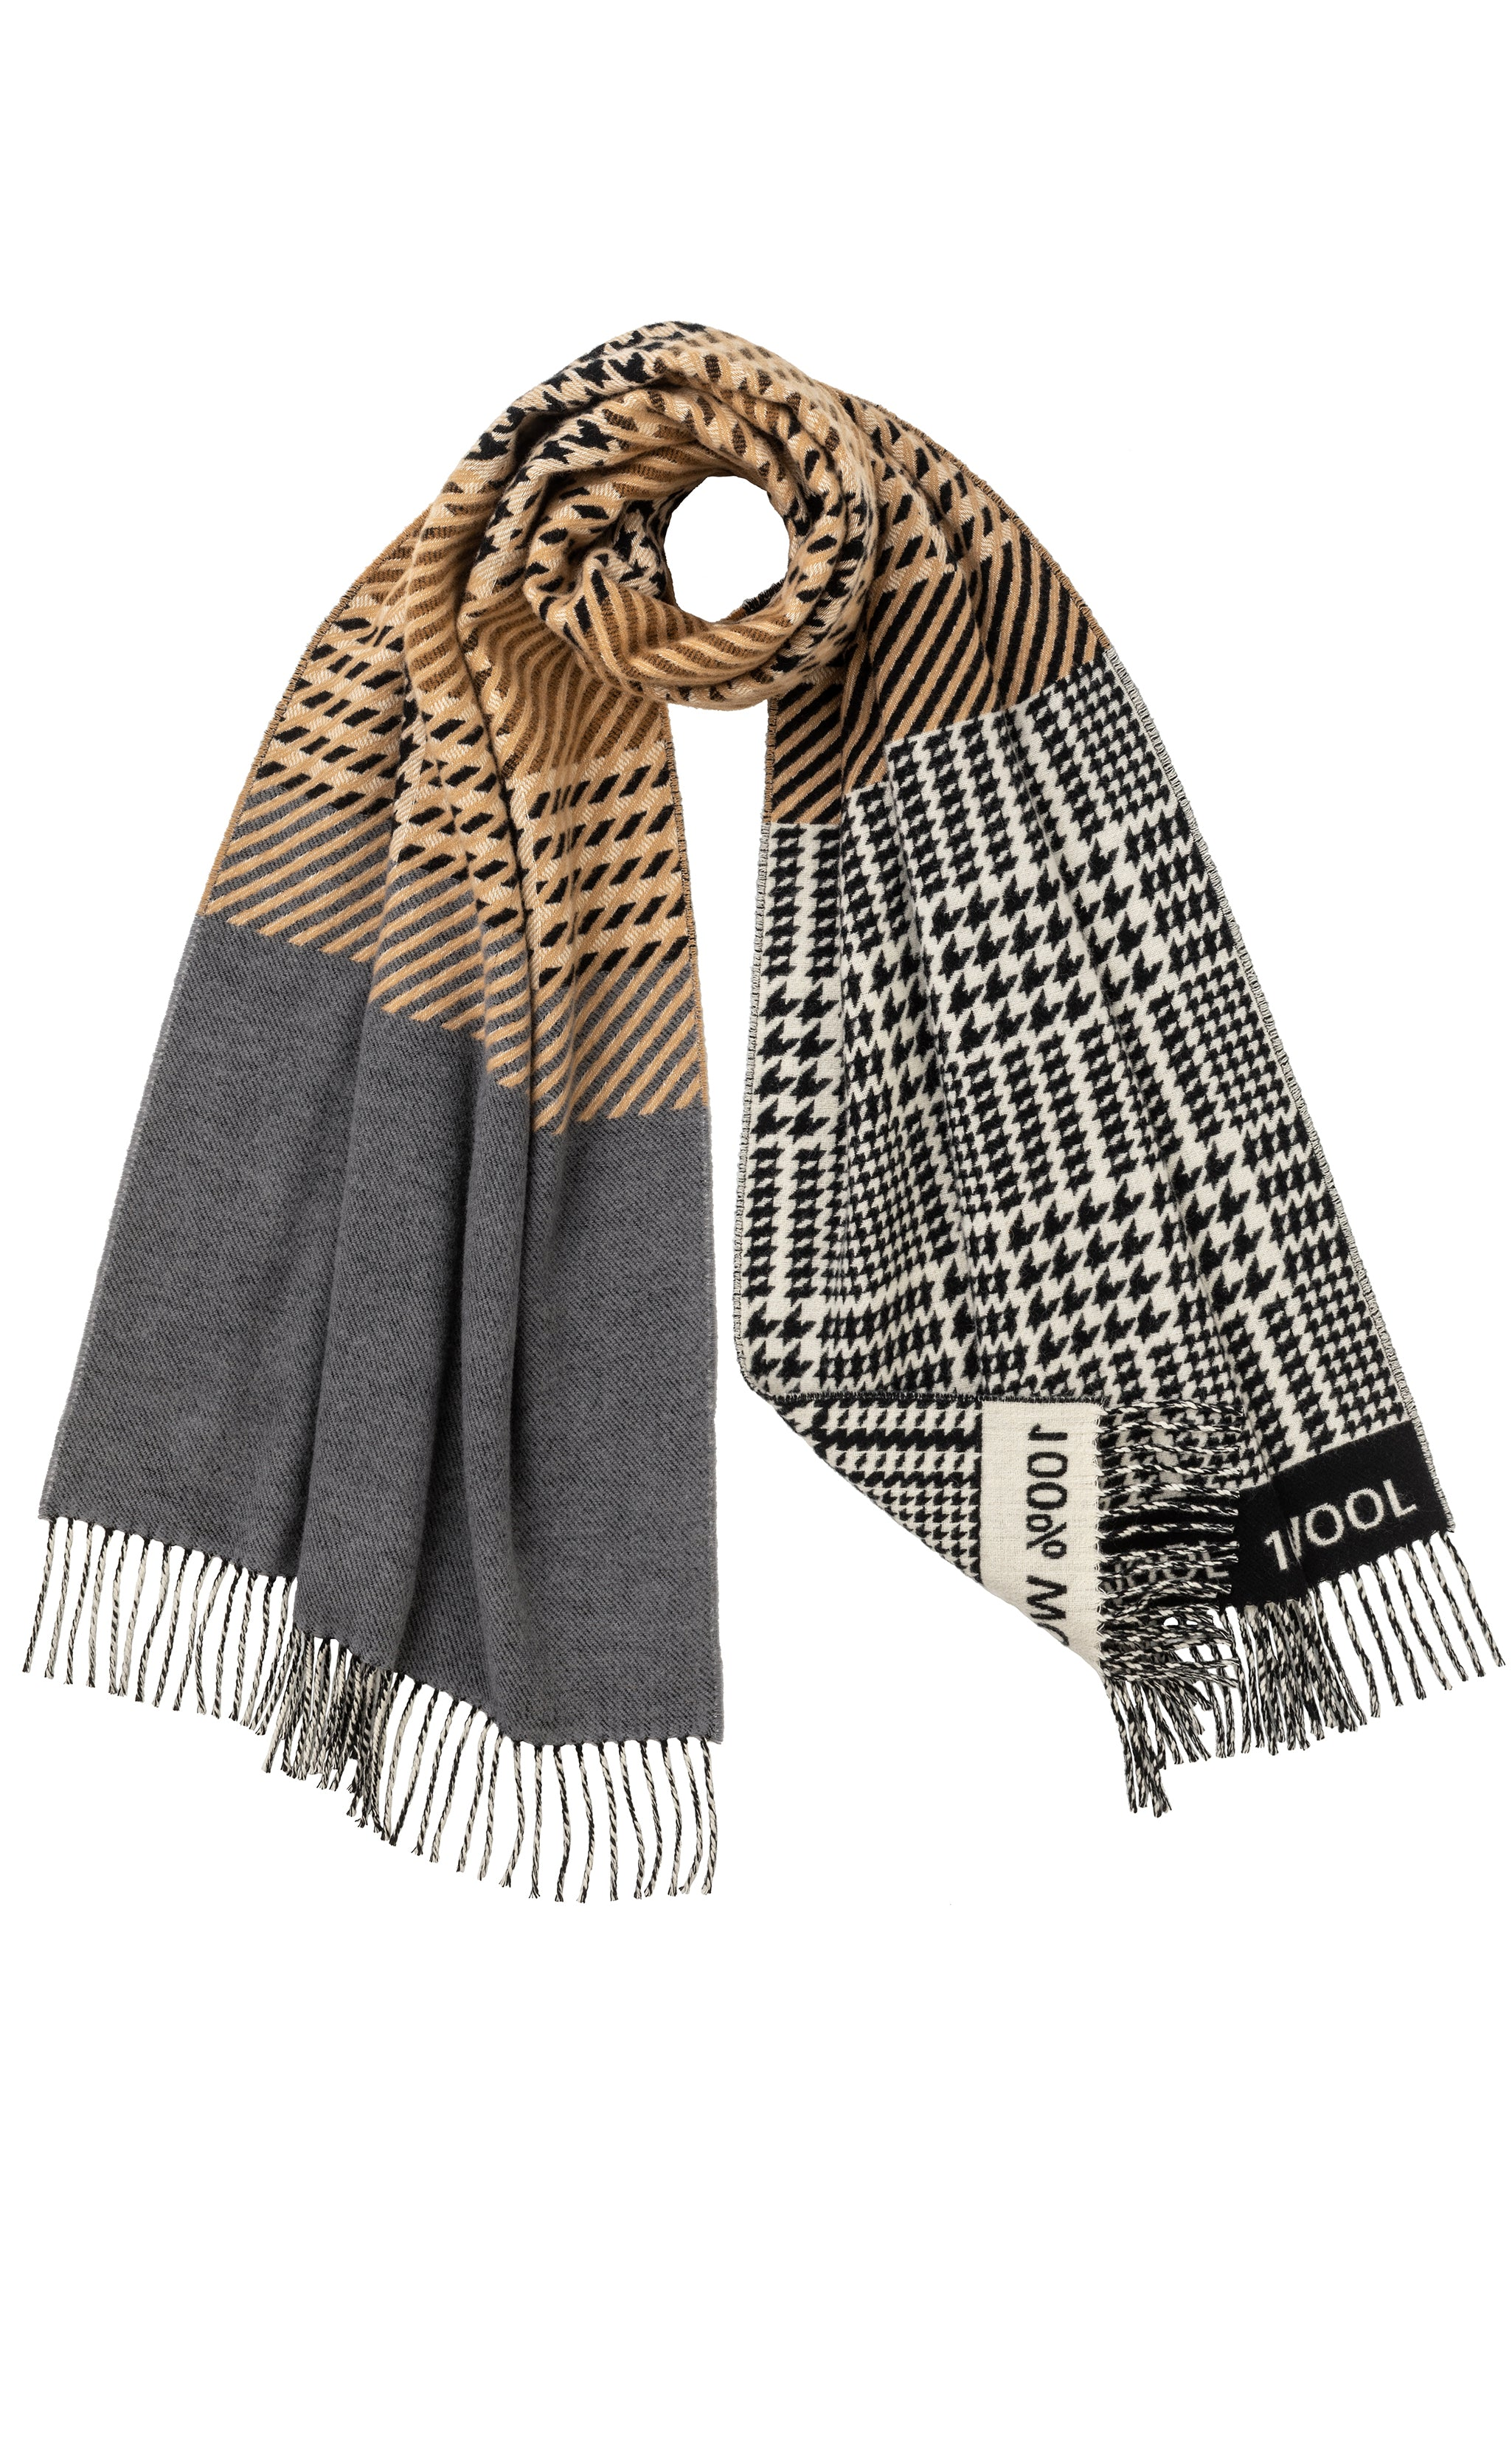 THE MURRAY SCARF- MOTHER OF PEARL X THE CAMPAIGN FOR WOOL